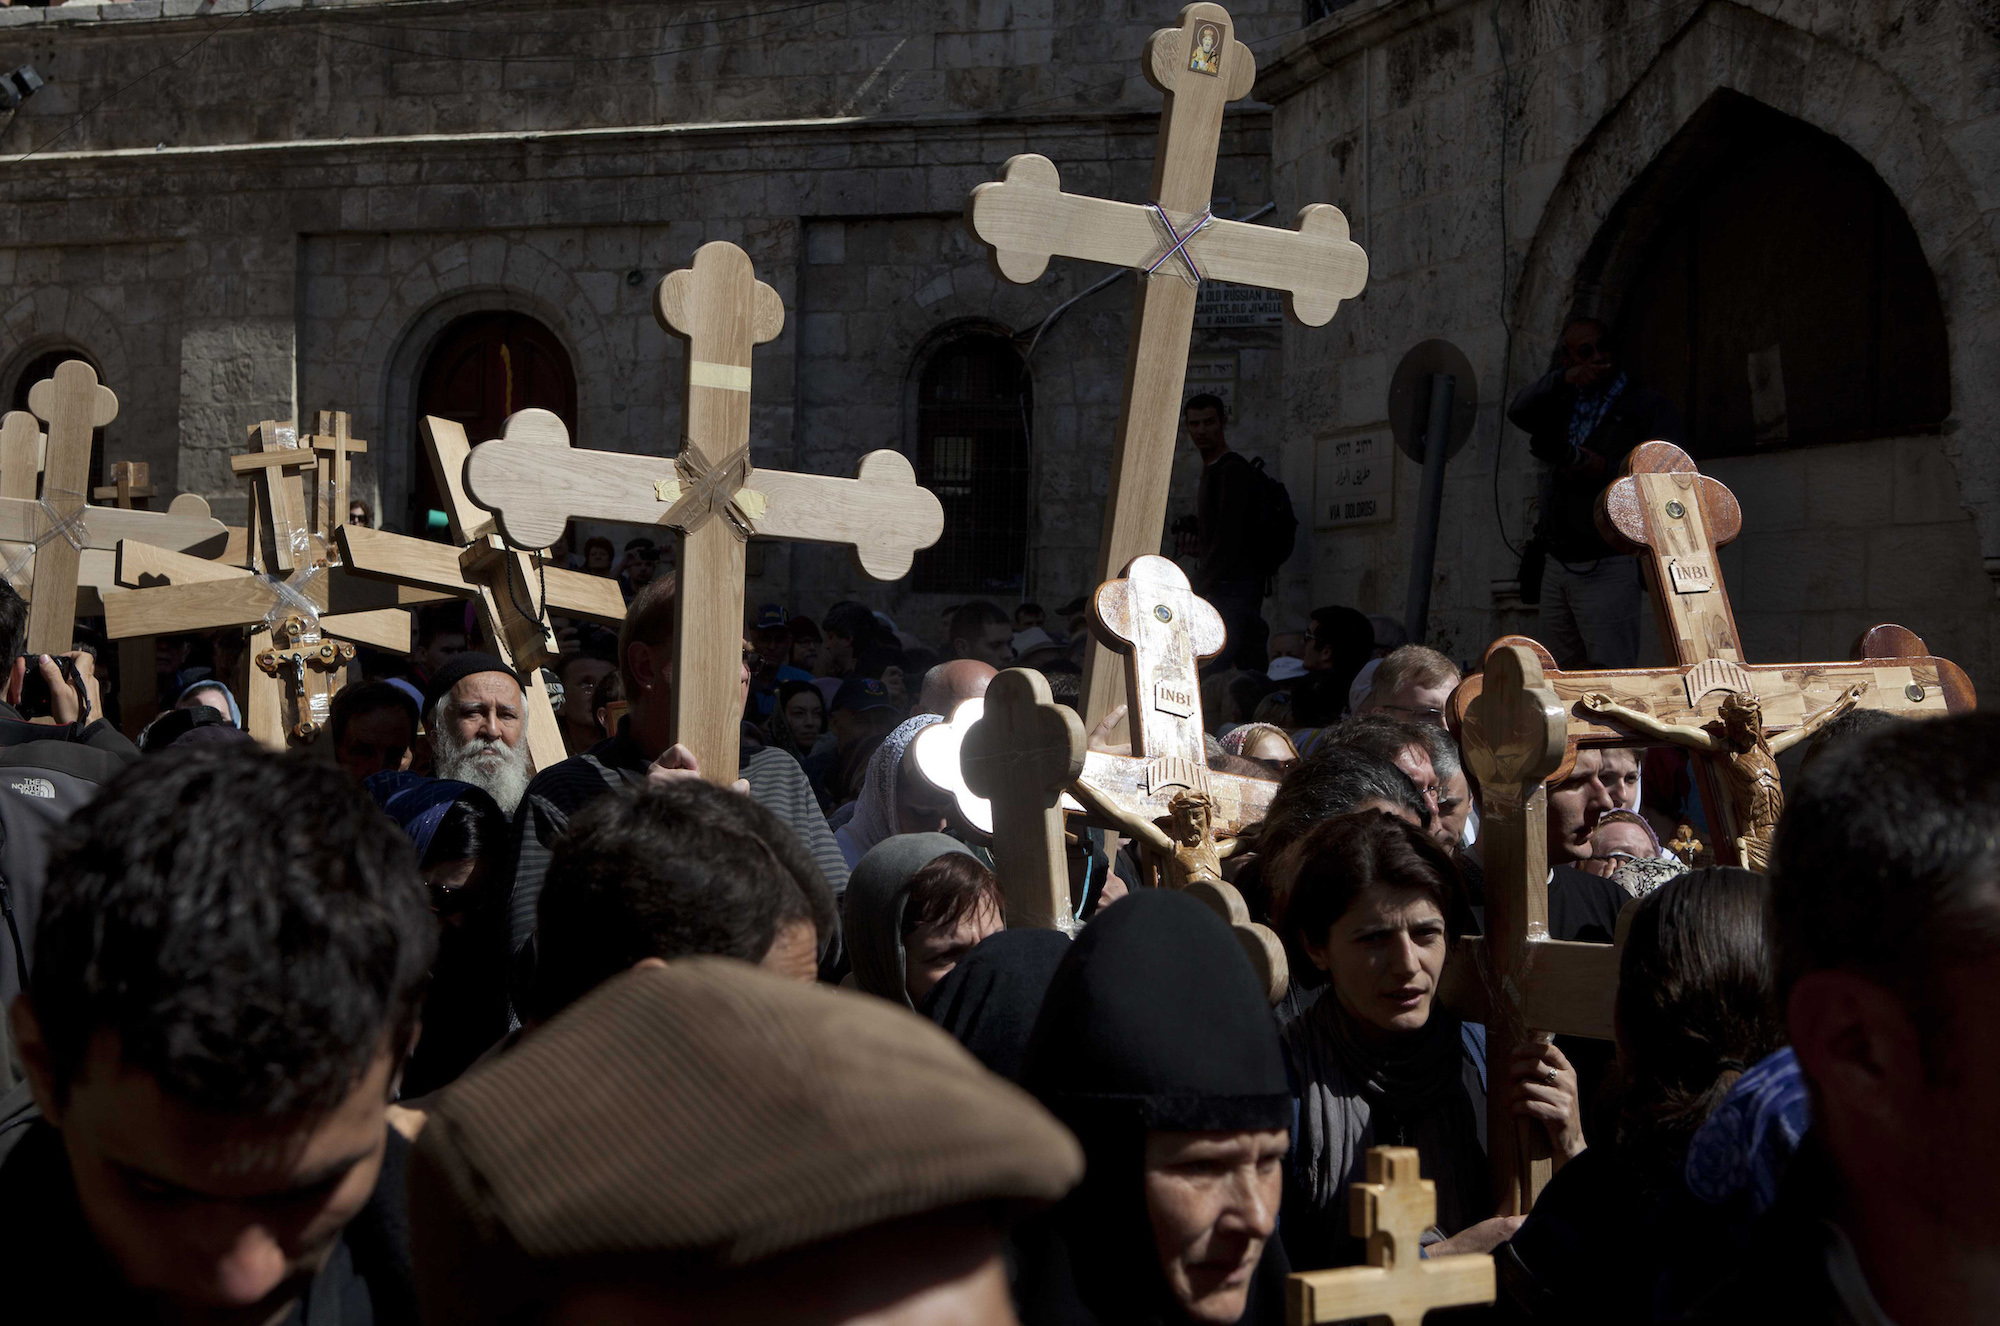 Christian worshippers hold crosses as they take part in the Eastern and Orthodox Church's Good Friday procession in the Old City of Jerusalem on April 13, 2012. Thousands of worshippers retraced the route Jesus took along the Via Dolorosa towards his crucifixion. (Photo by Heidi Levine/GroundTruth)